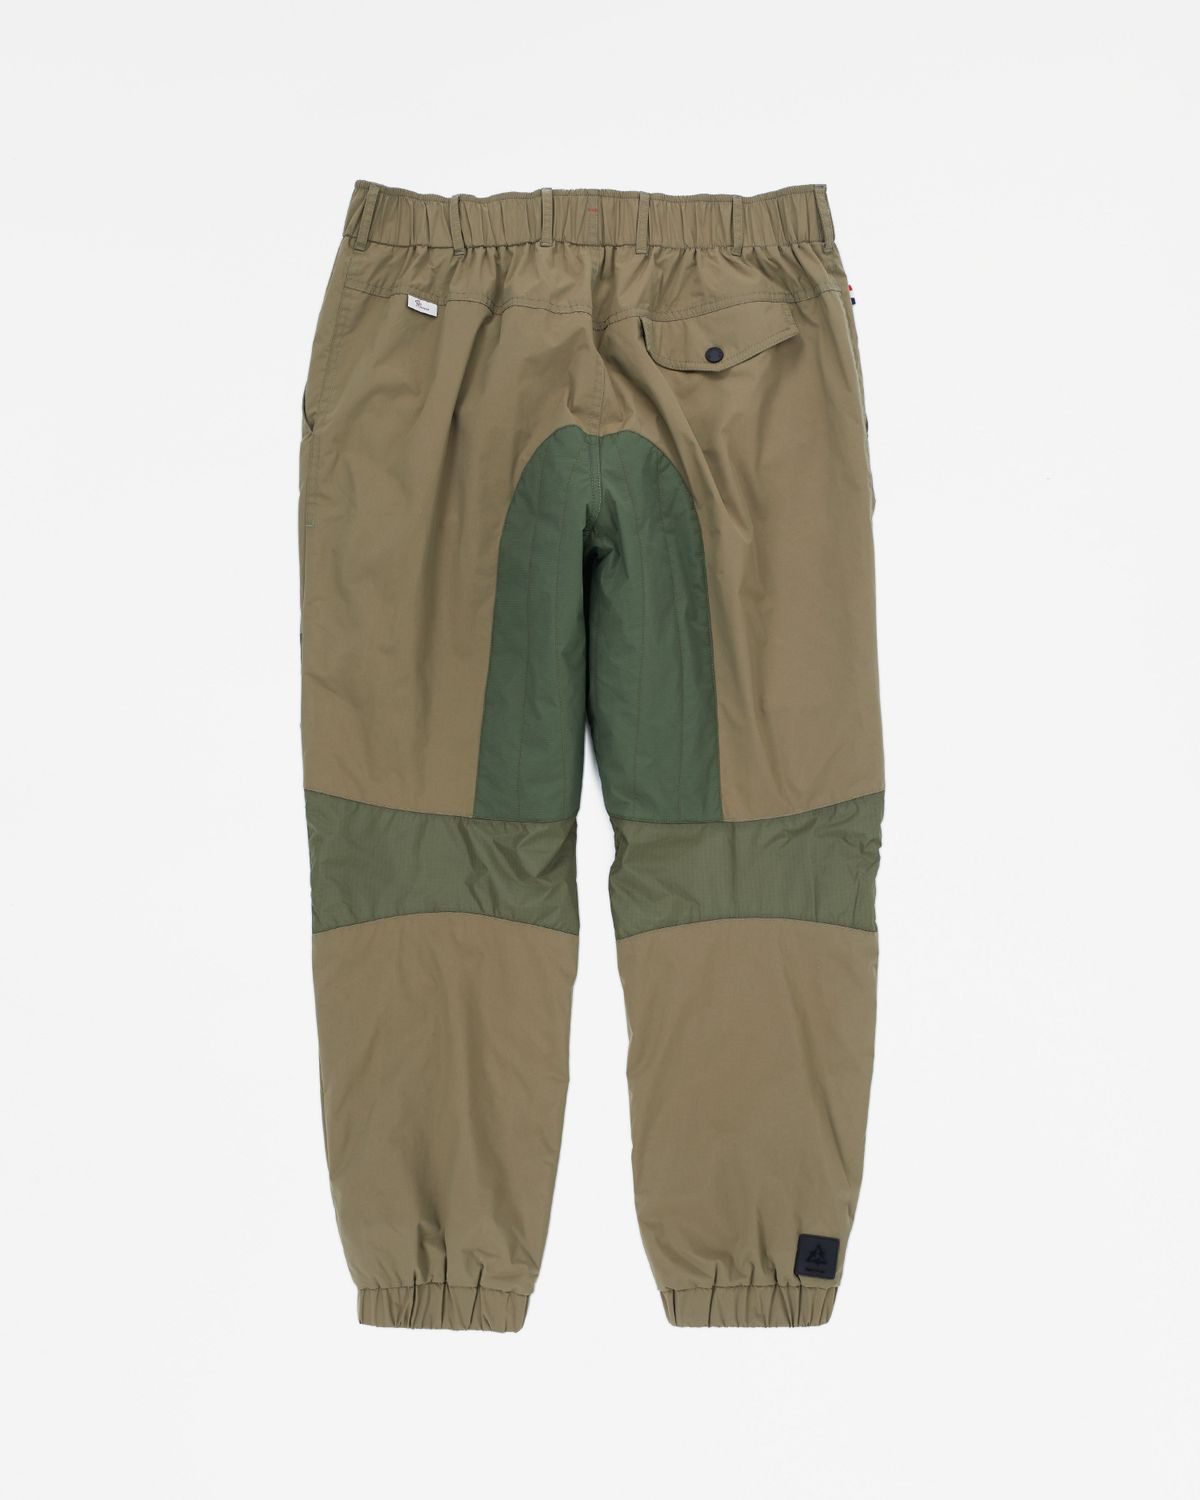 Moncler — Grenoble Recycled Sports Trousers - Image 2